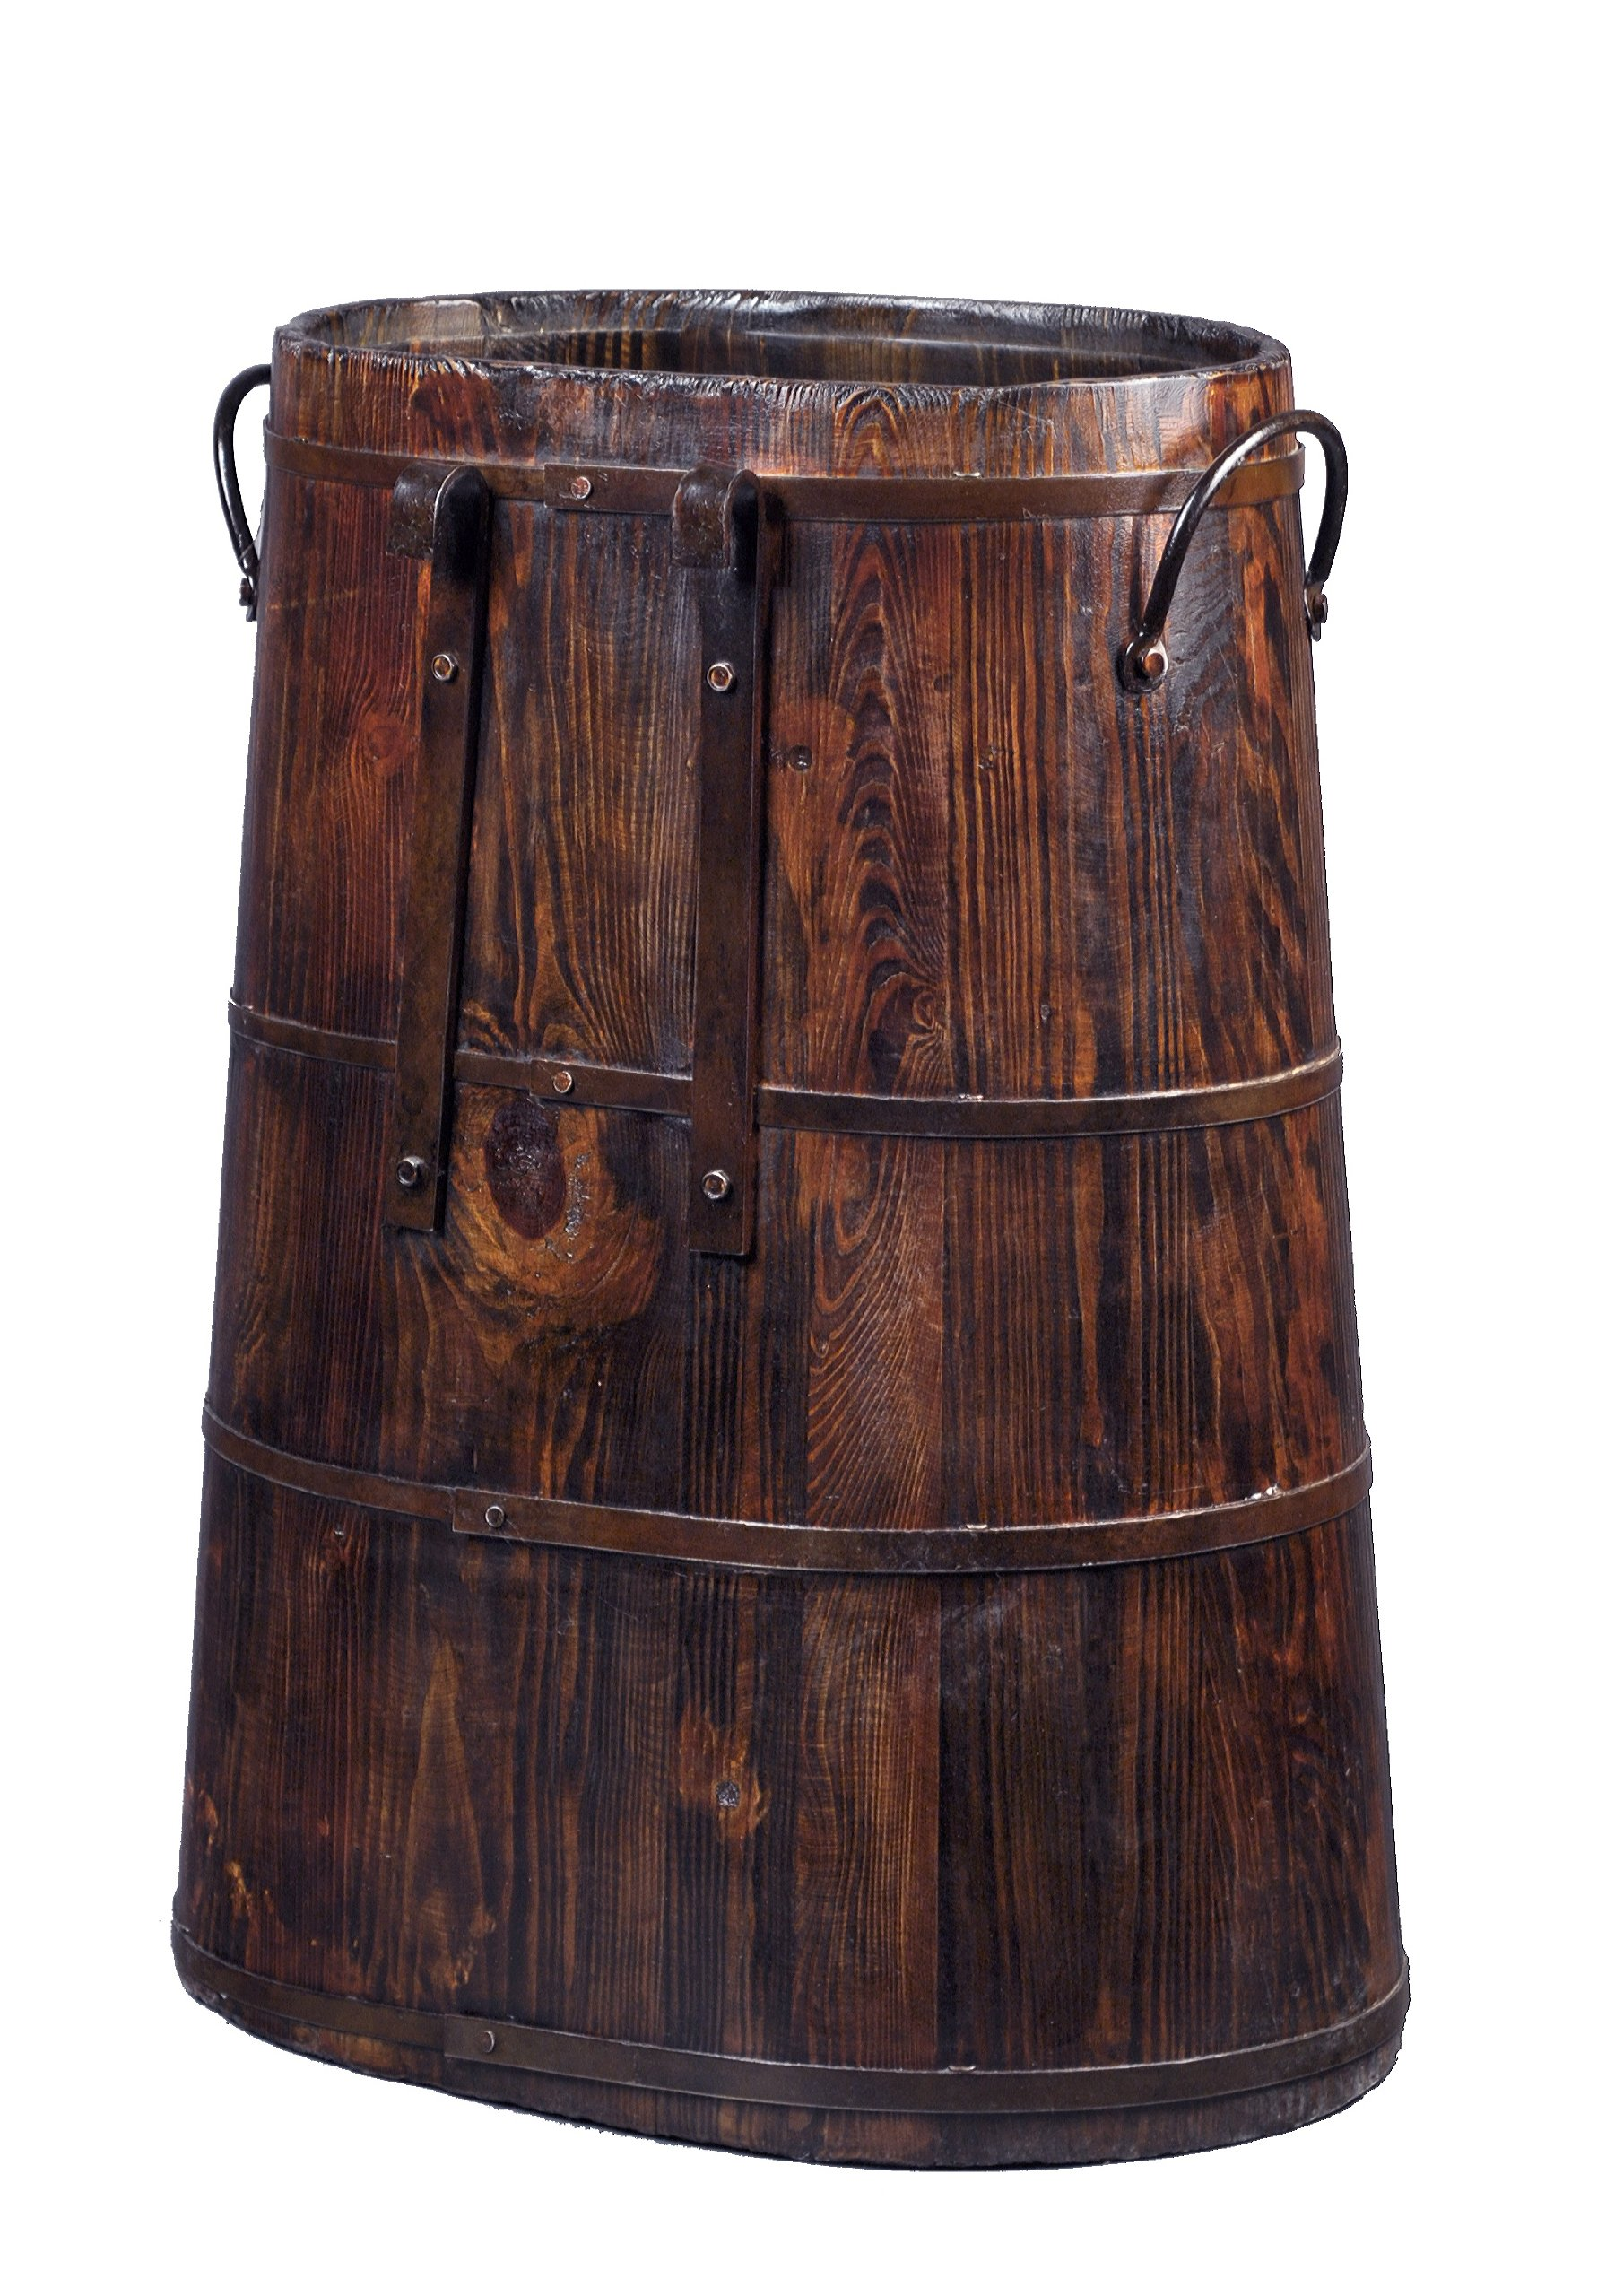 Chinese Barrel with Iron Rings, Natural Pine